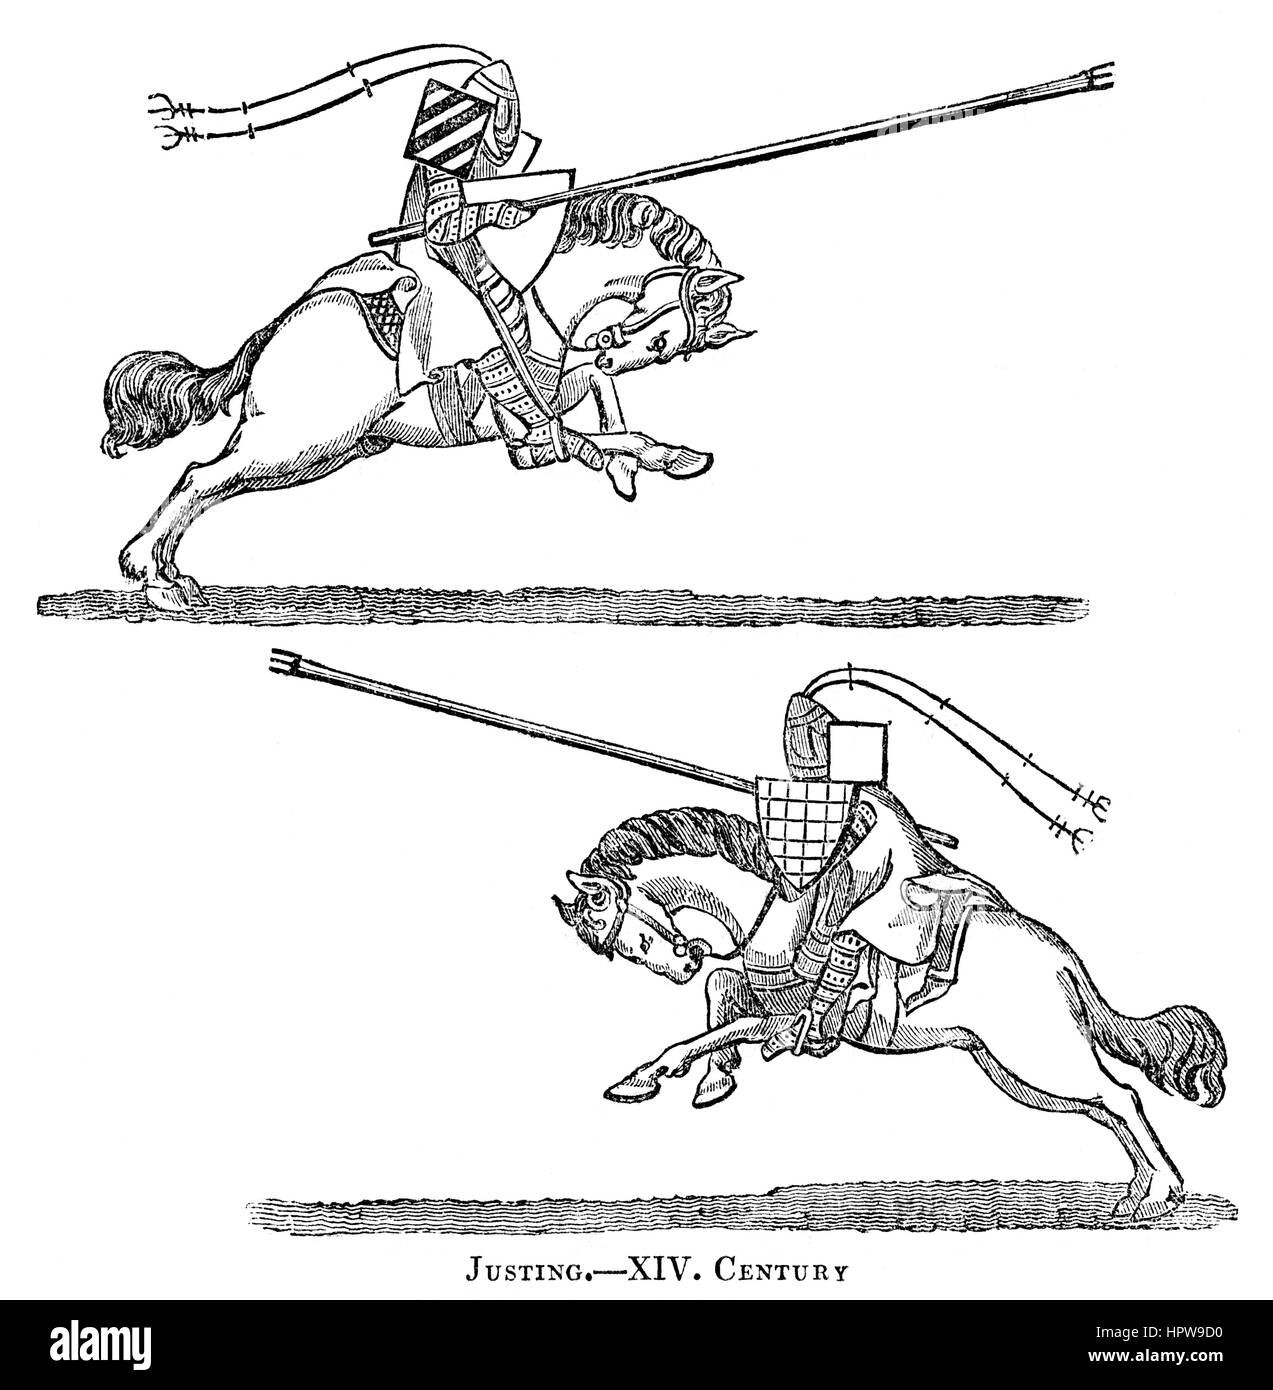 An illustration of Justing (jousting) in the 14th Century scanned at high resolution from a book printed in 1831. - Stock Image